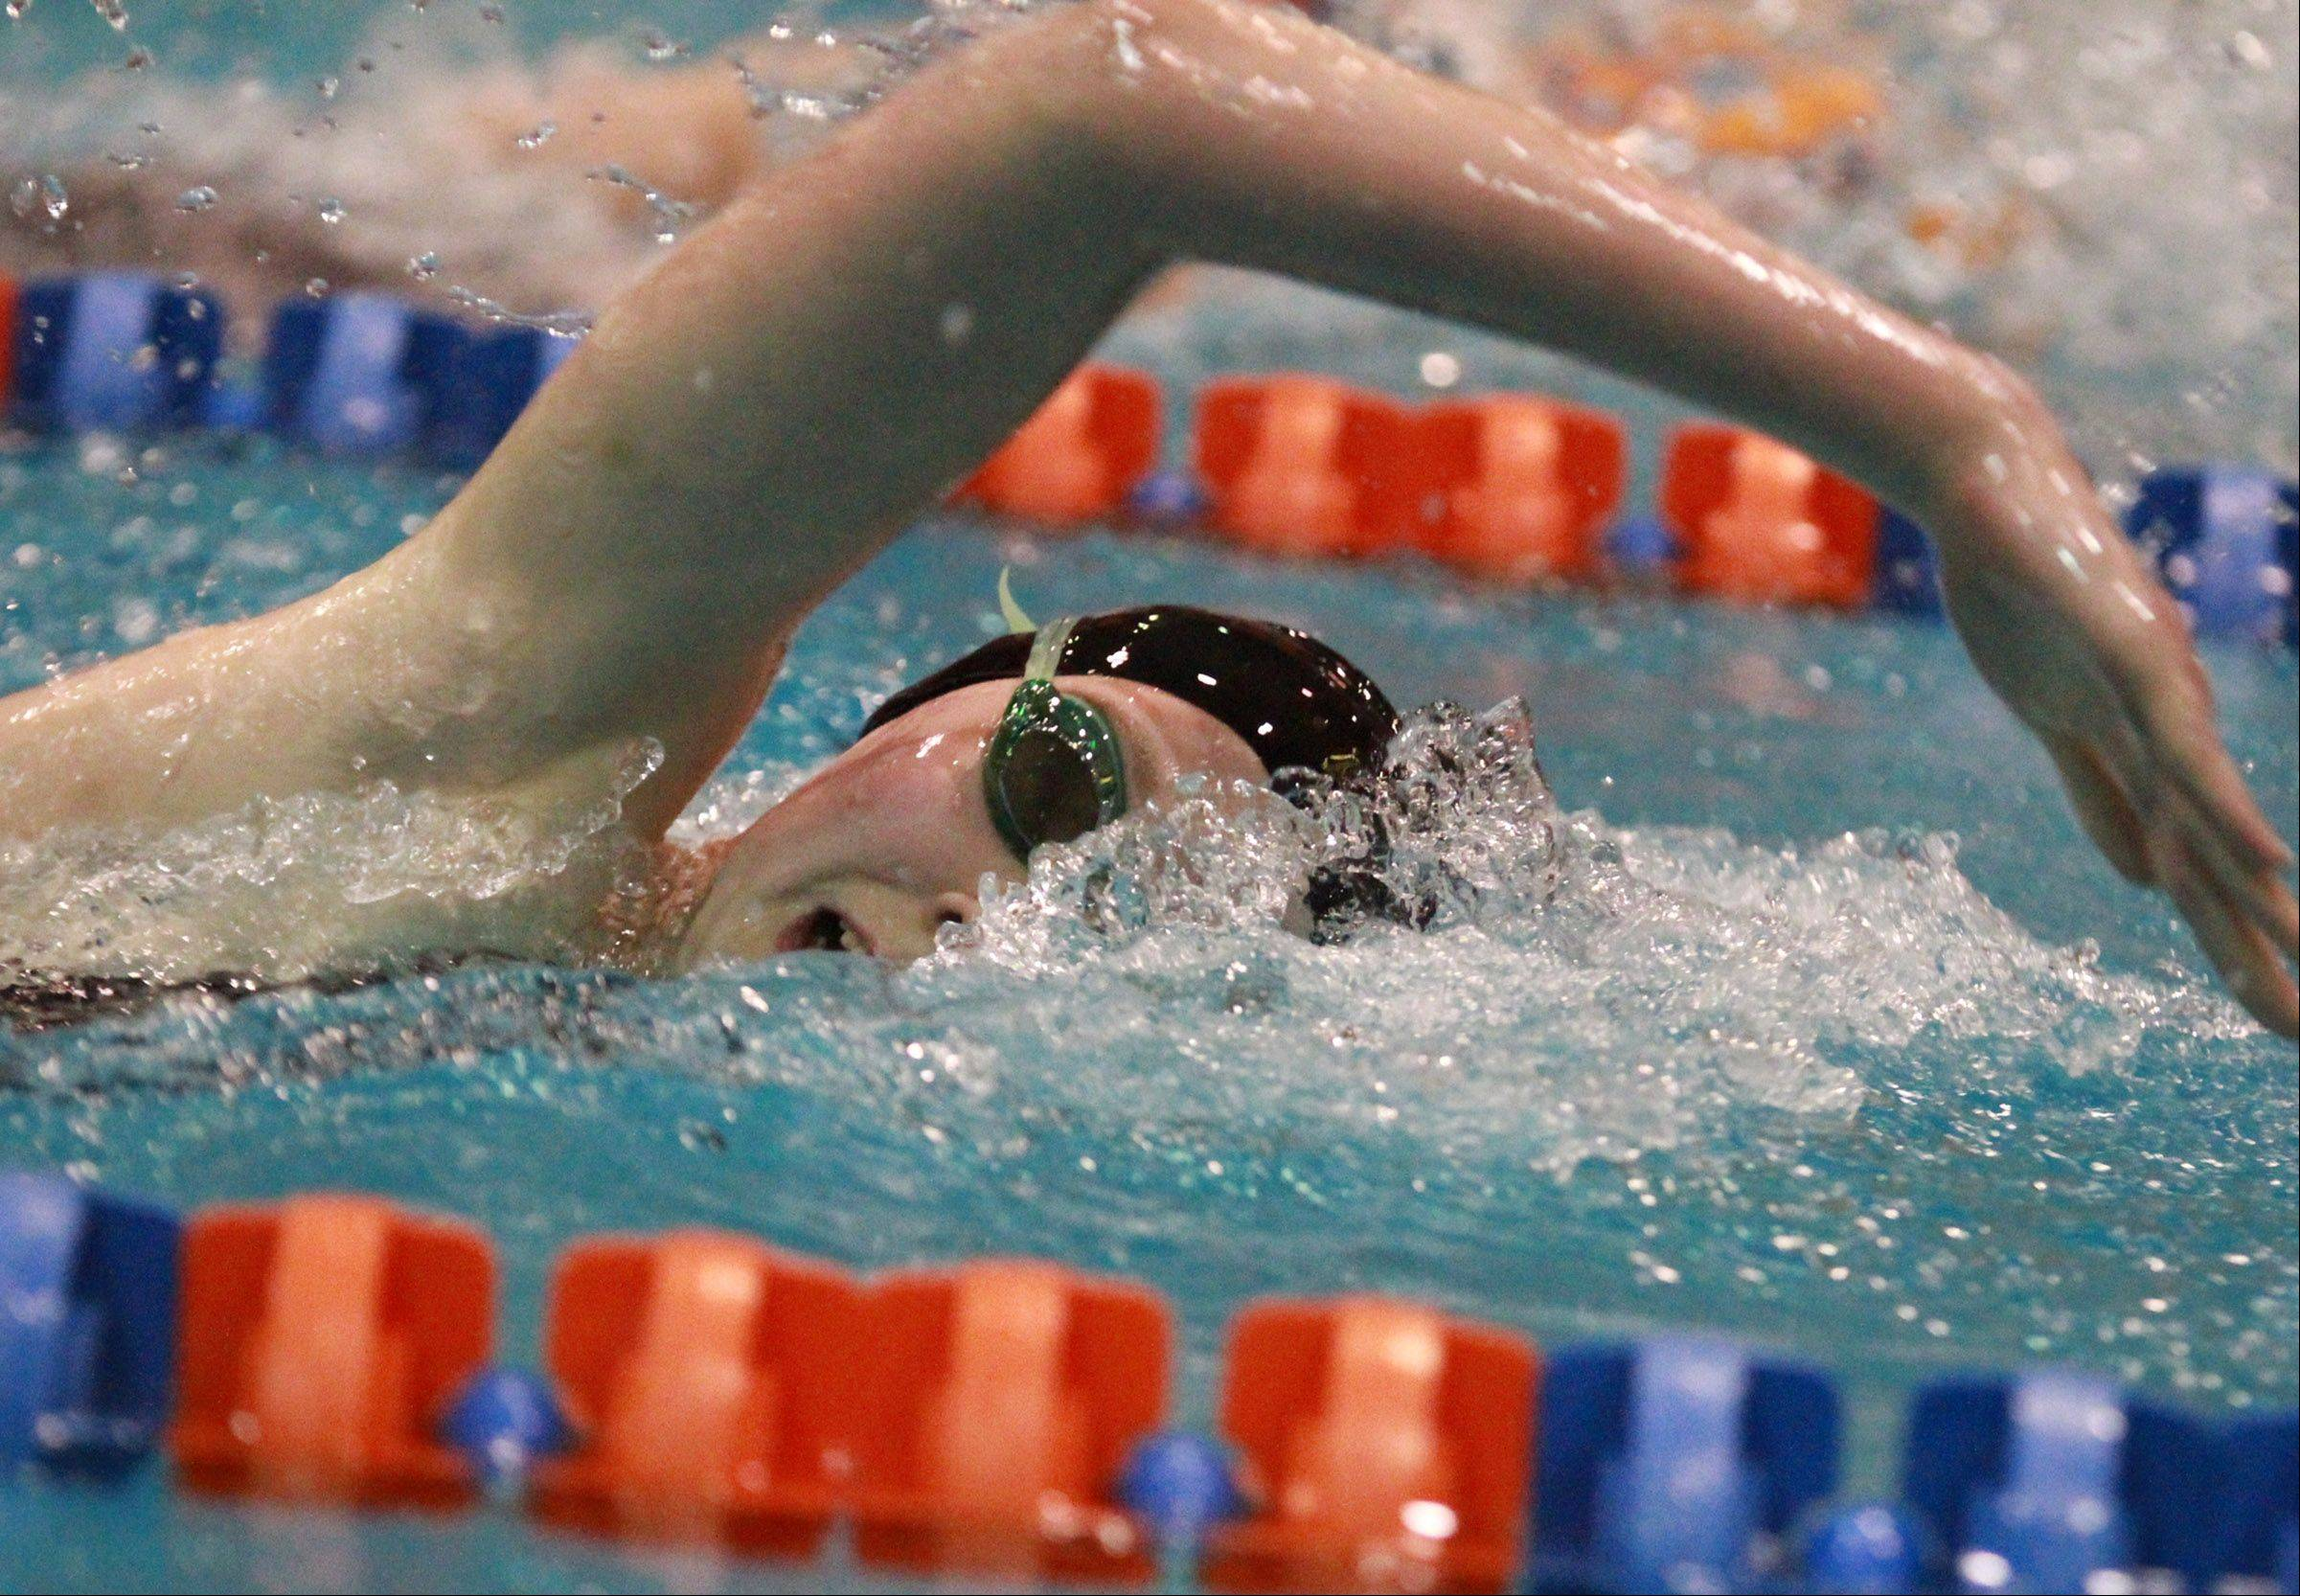 Barrington's Kirsten Jacobsen finished fourth in the 200-yard freestyle at the state meet preliminaries in Evanston on Friday.